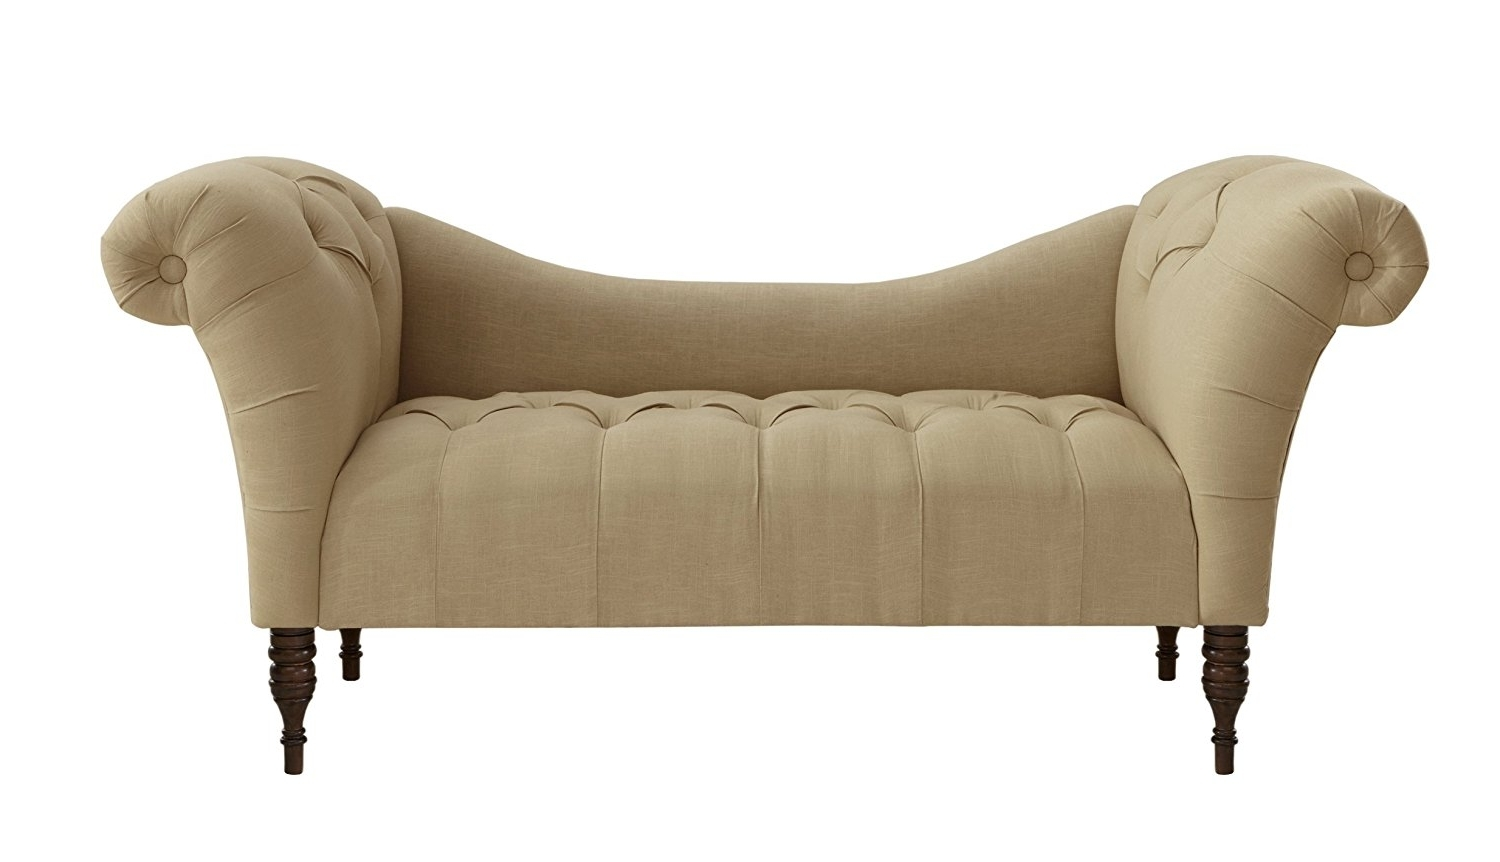 Most Popular Tufted Chaises Pertaining To Amazon: Skyline Furniture Tufted Chaise Lounge In Linen (View 12 of 15)